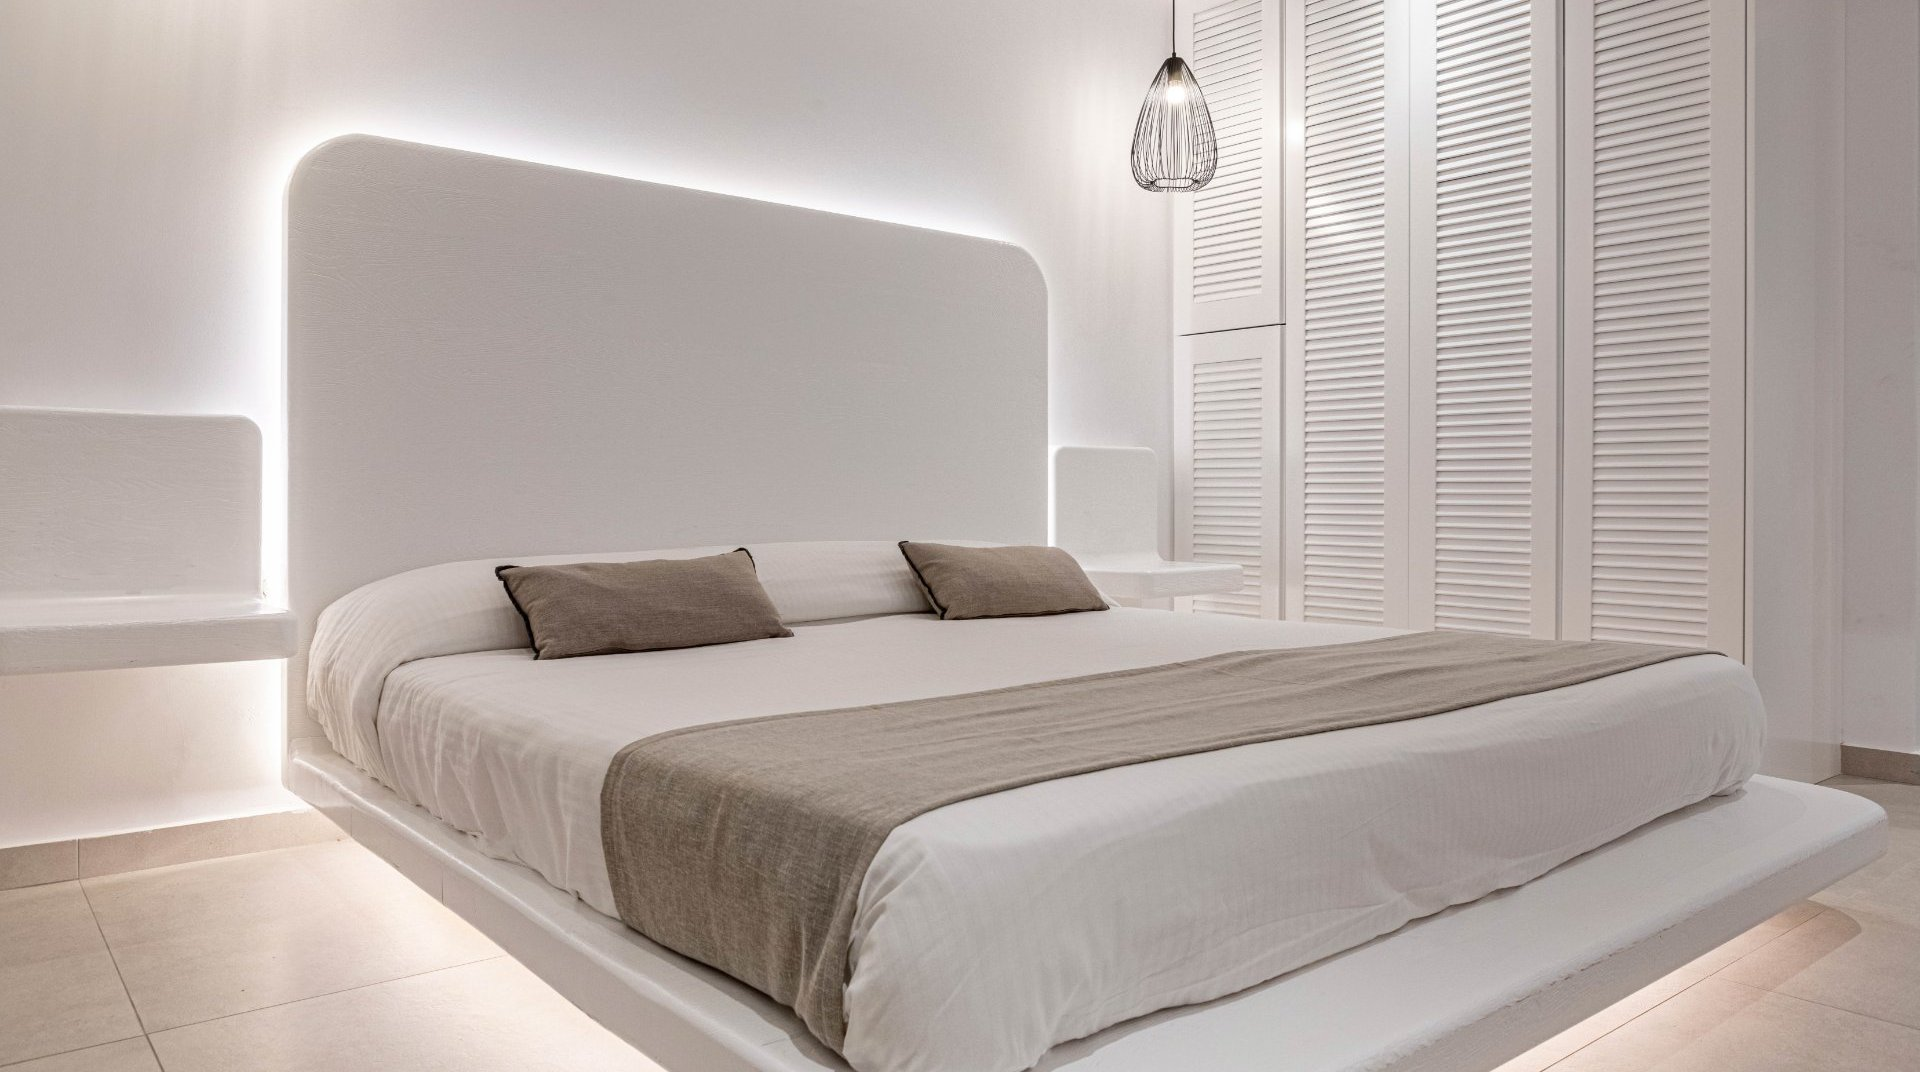 The interior of the Daylight Wing room with the bed and the underlights, the modern bedside tables and the closet